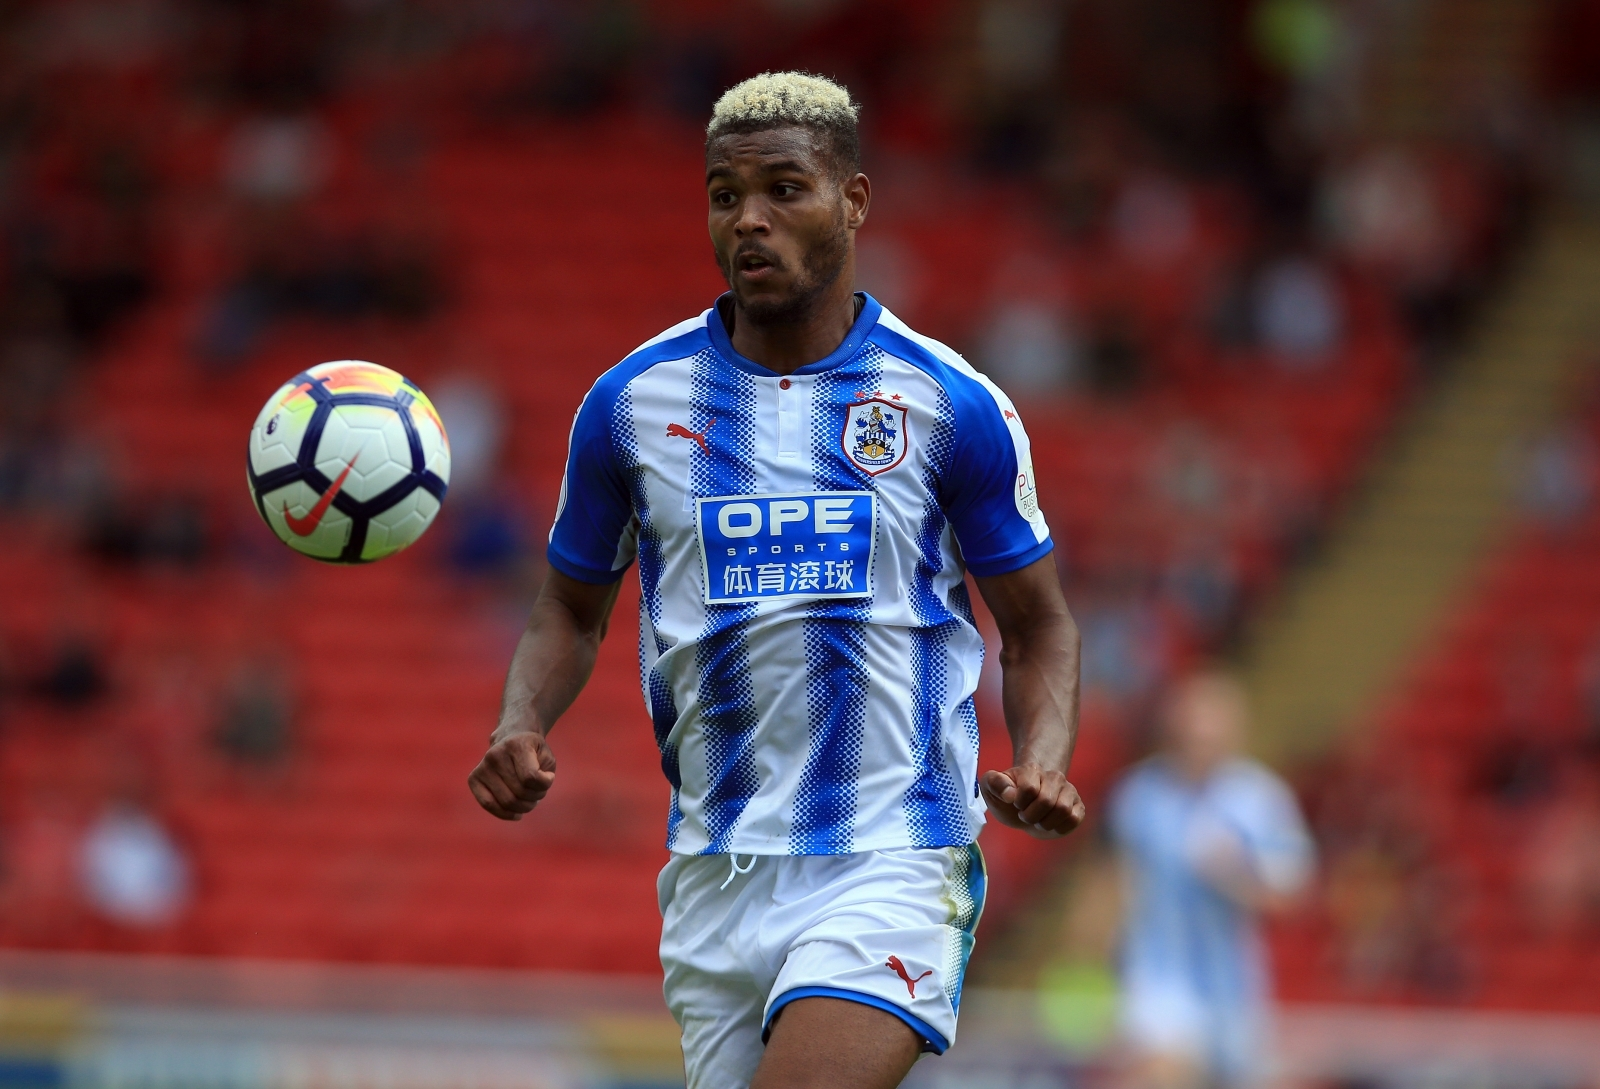 Two-goal Mounie helps Huddersfield to shock win at Palace